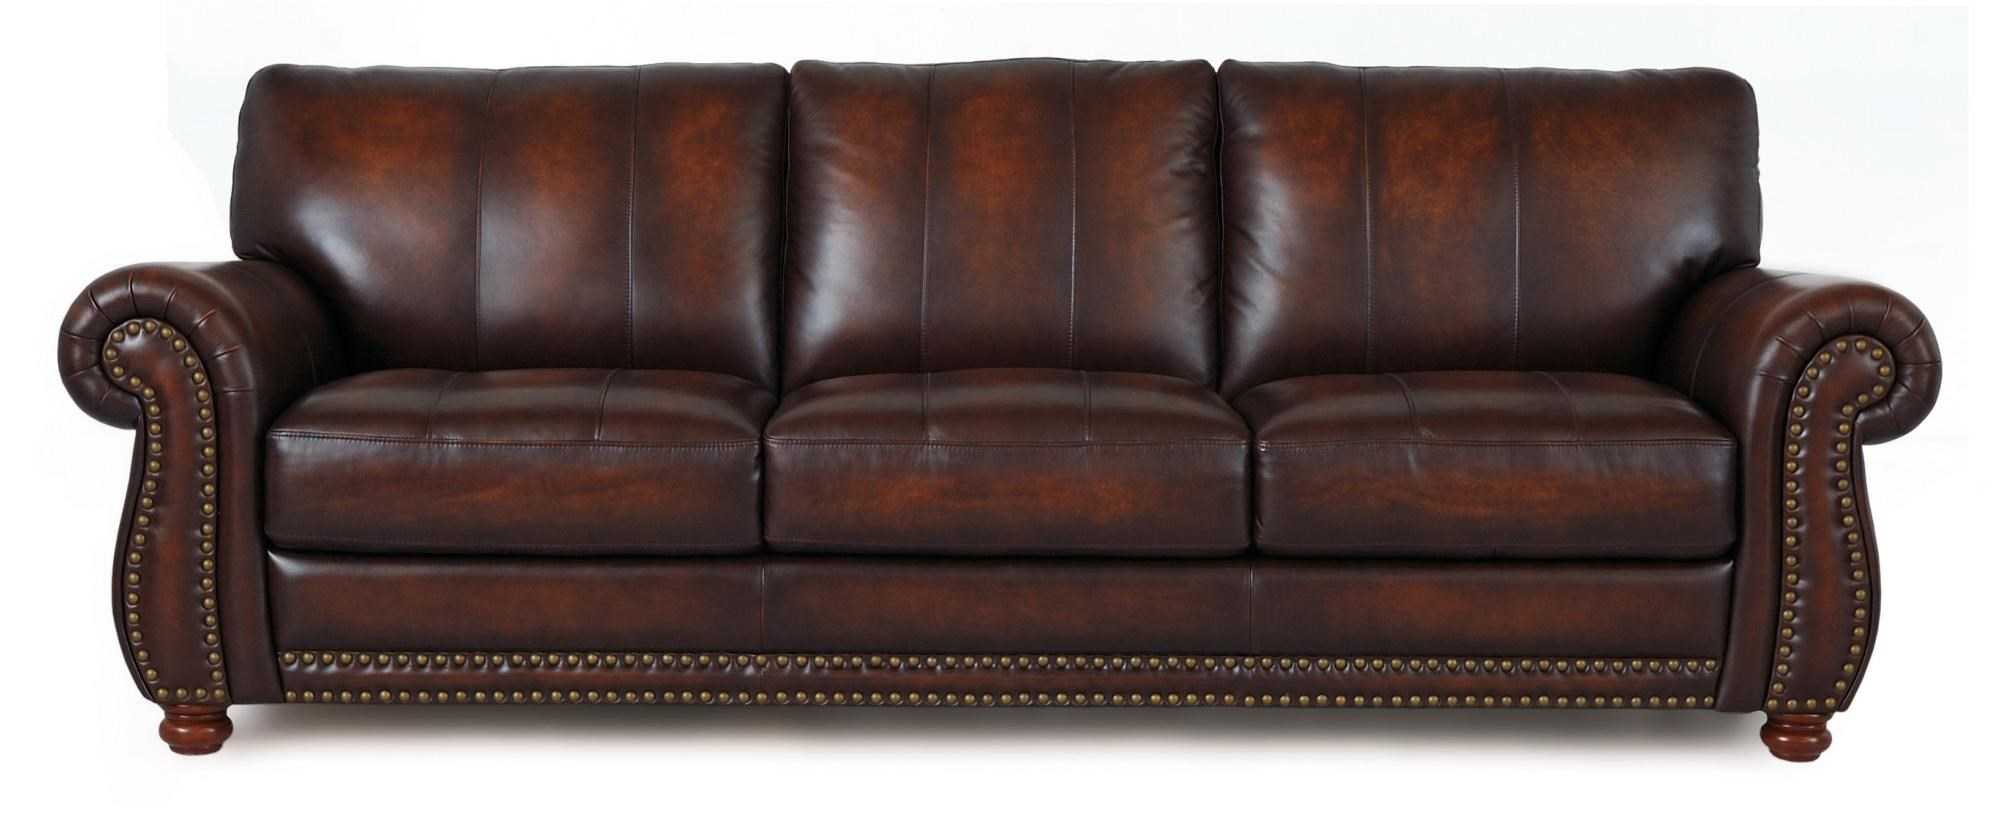 Futura Leather Futura LeatherTraditional Leather Sofa